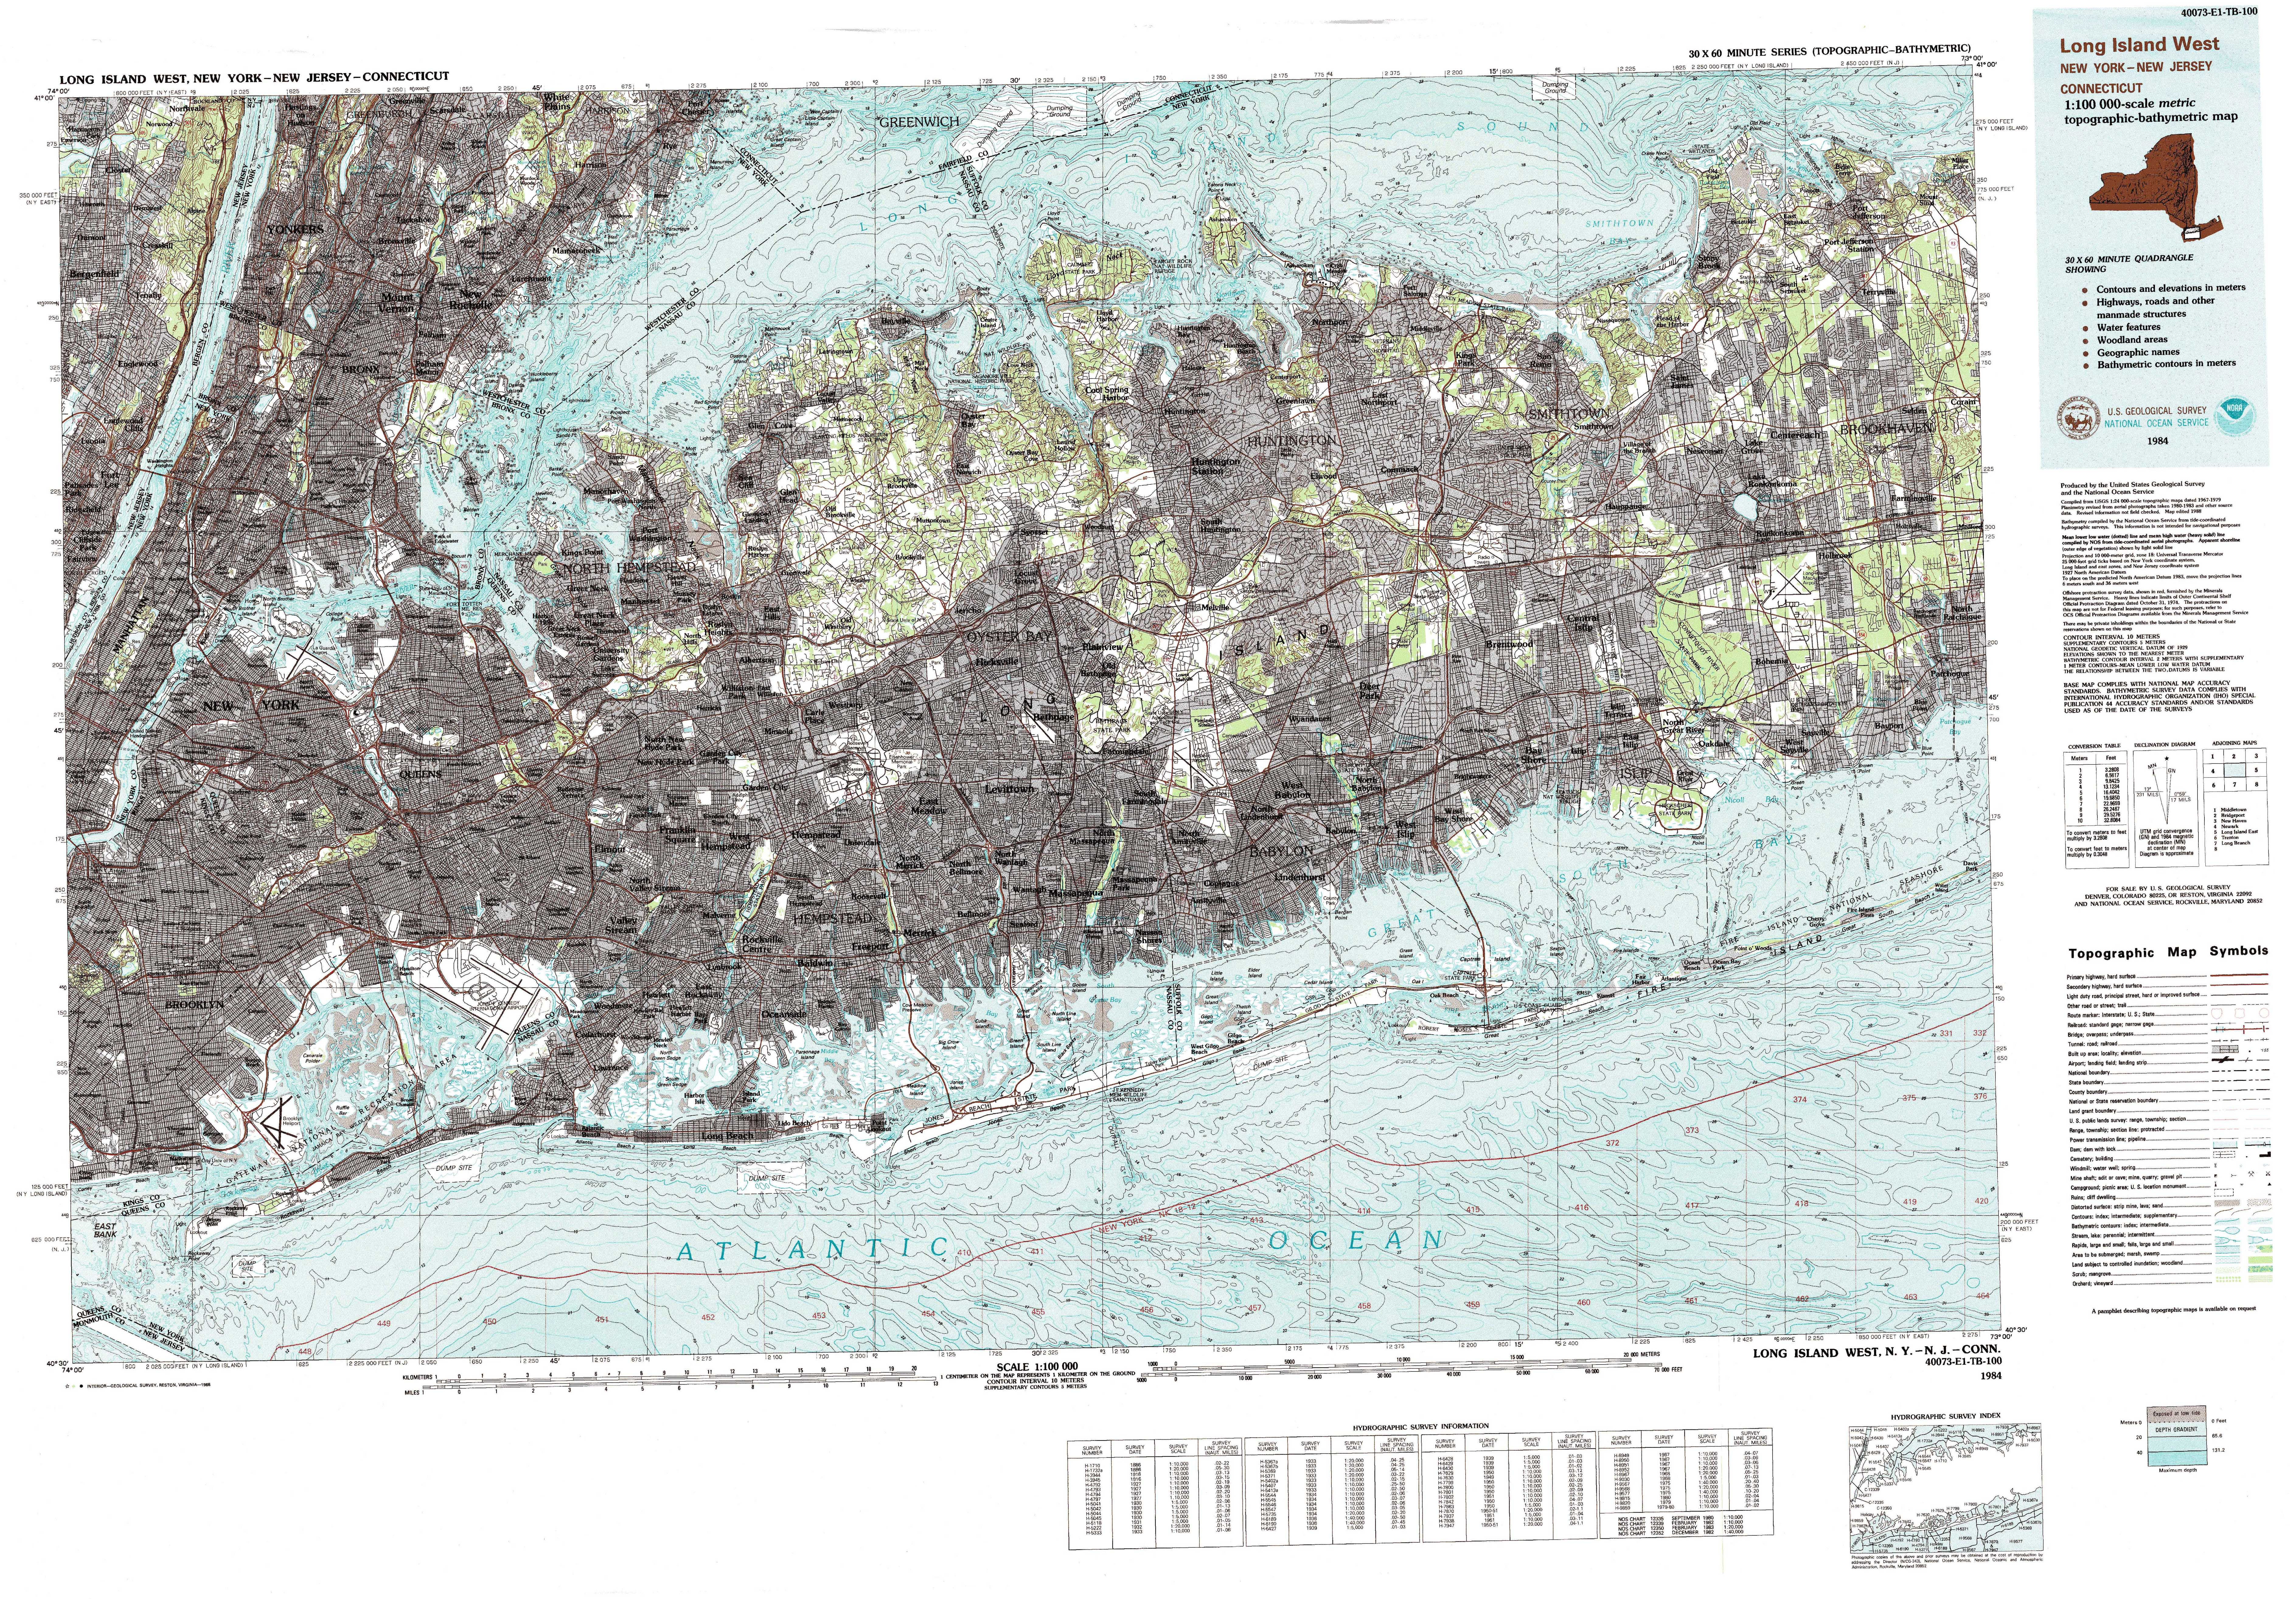 New York Topo Maps (Topographic Maps) 1:100,000